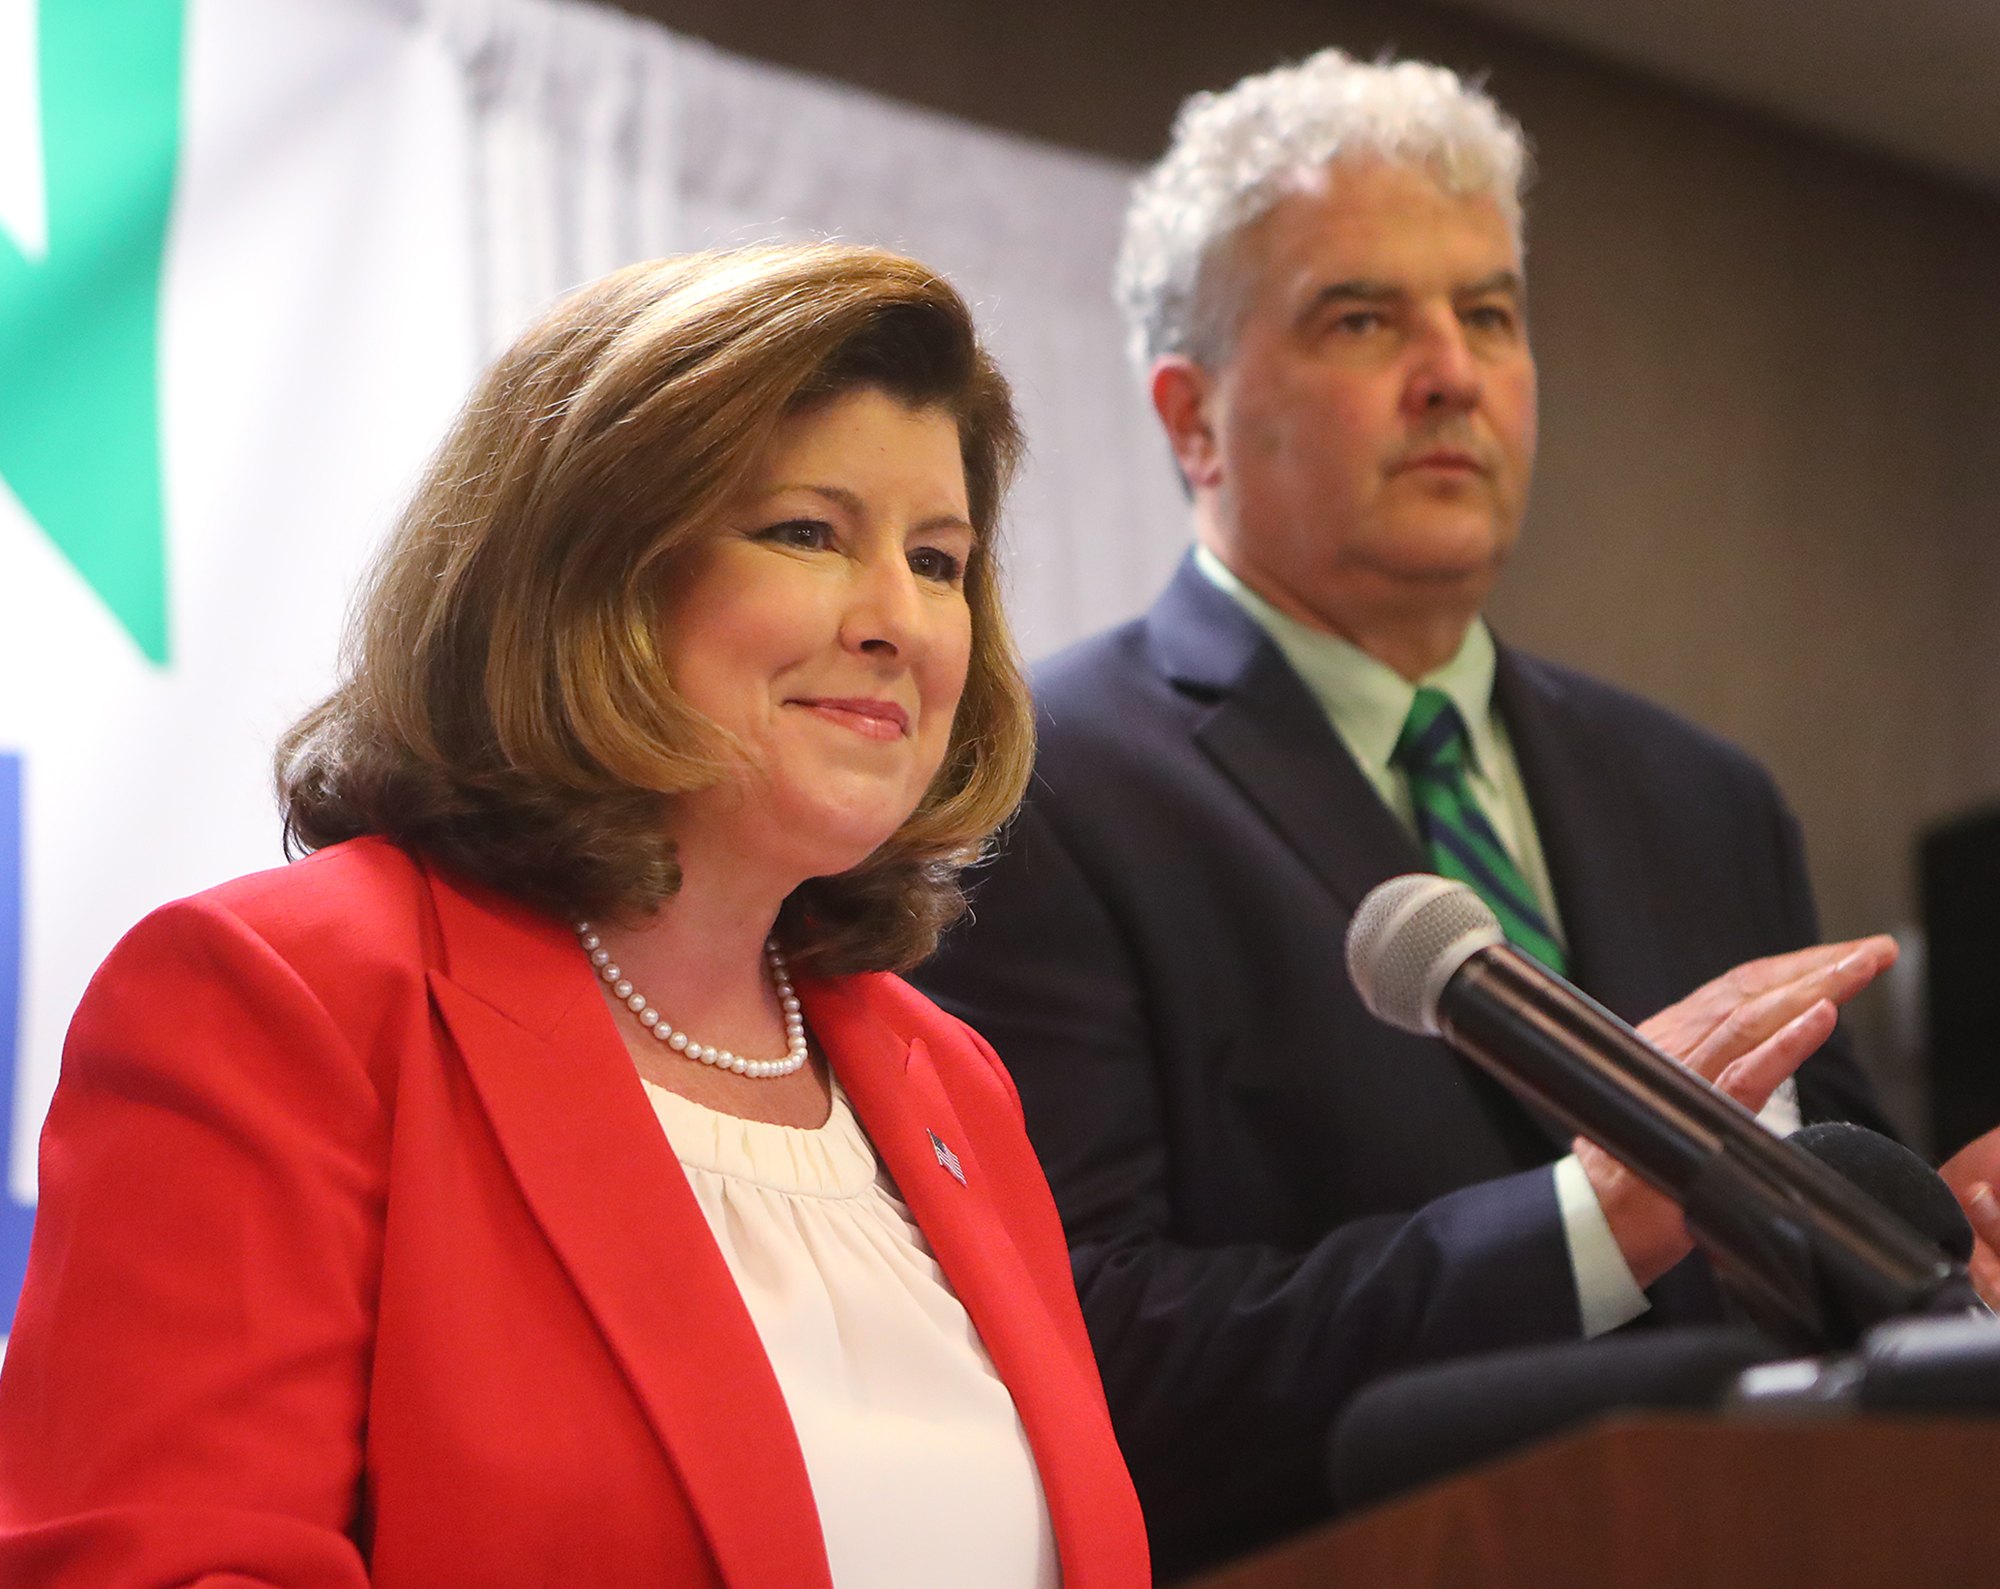 The local take on Karen Handel's decision to skip a Sixth District debate